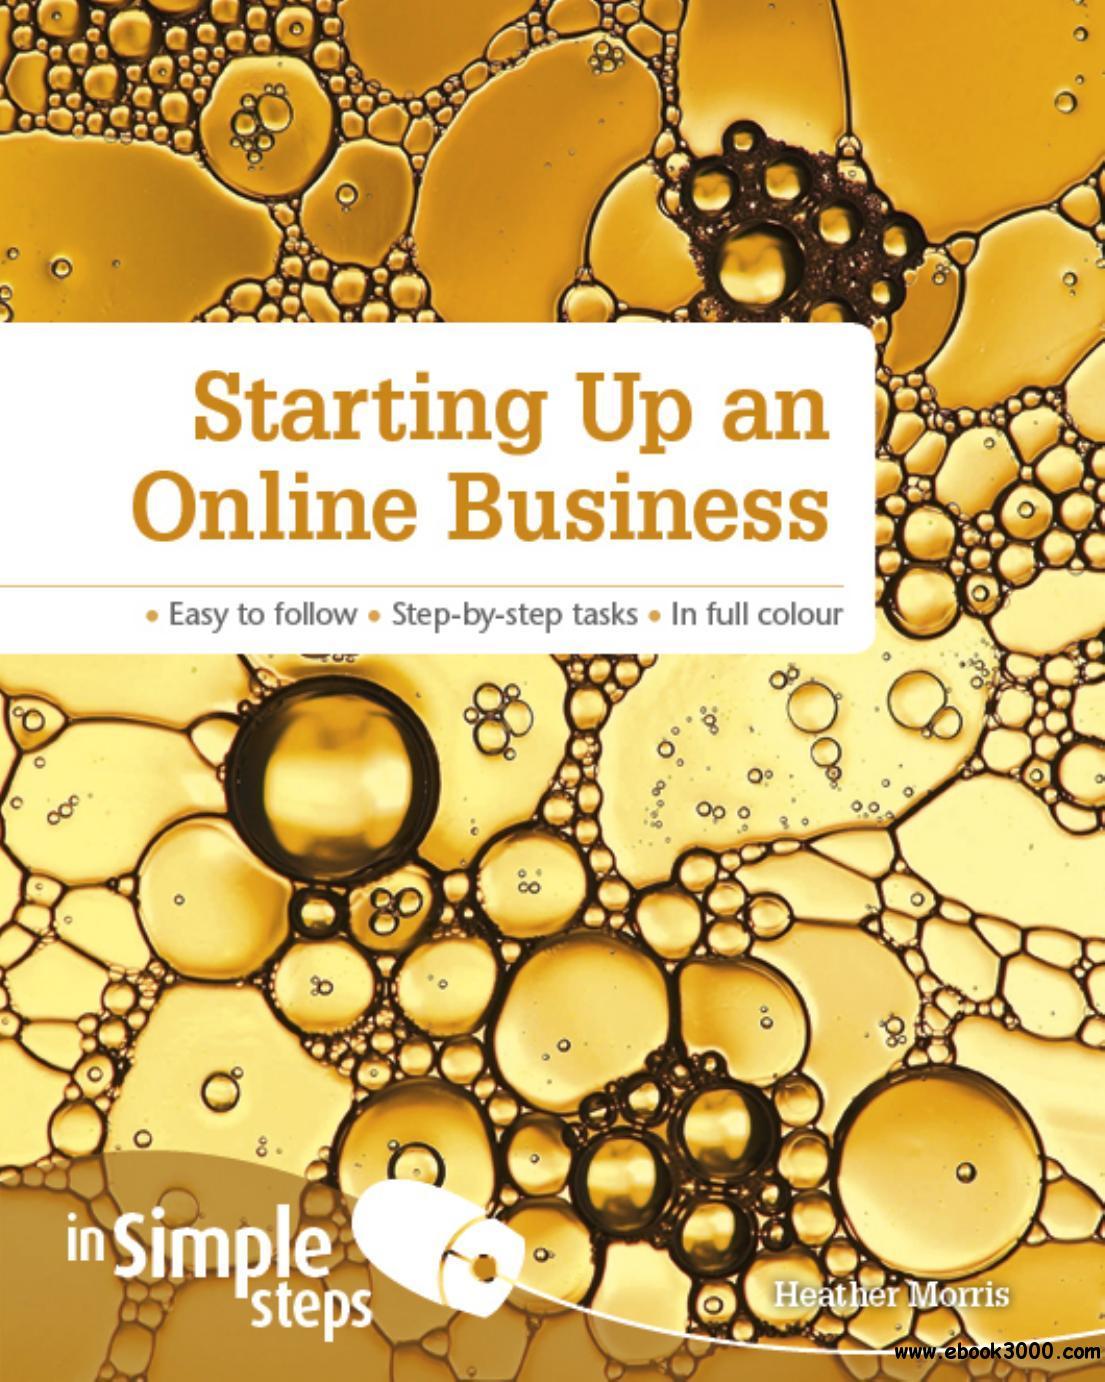 Starting Up an Online Business (In Simple Steps)